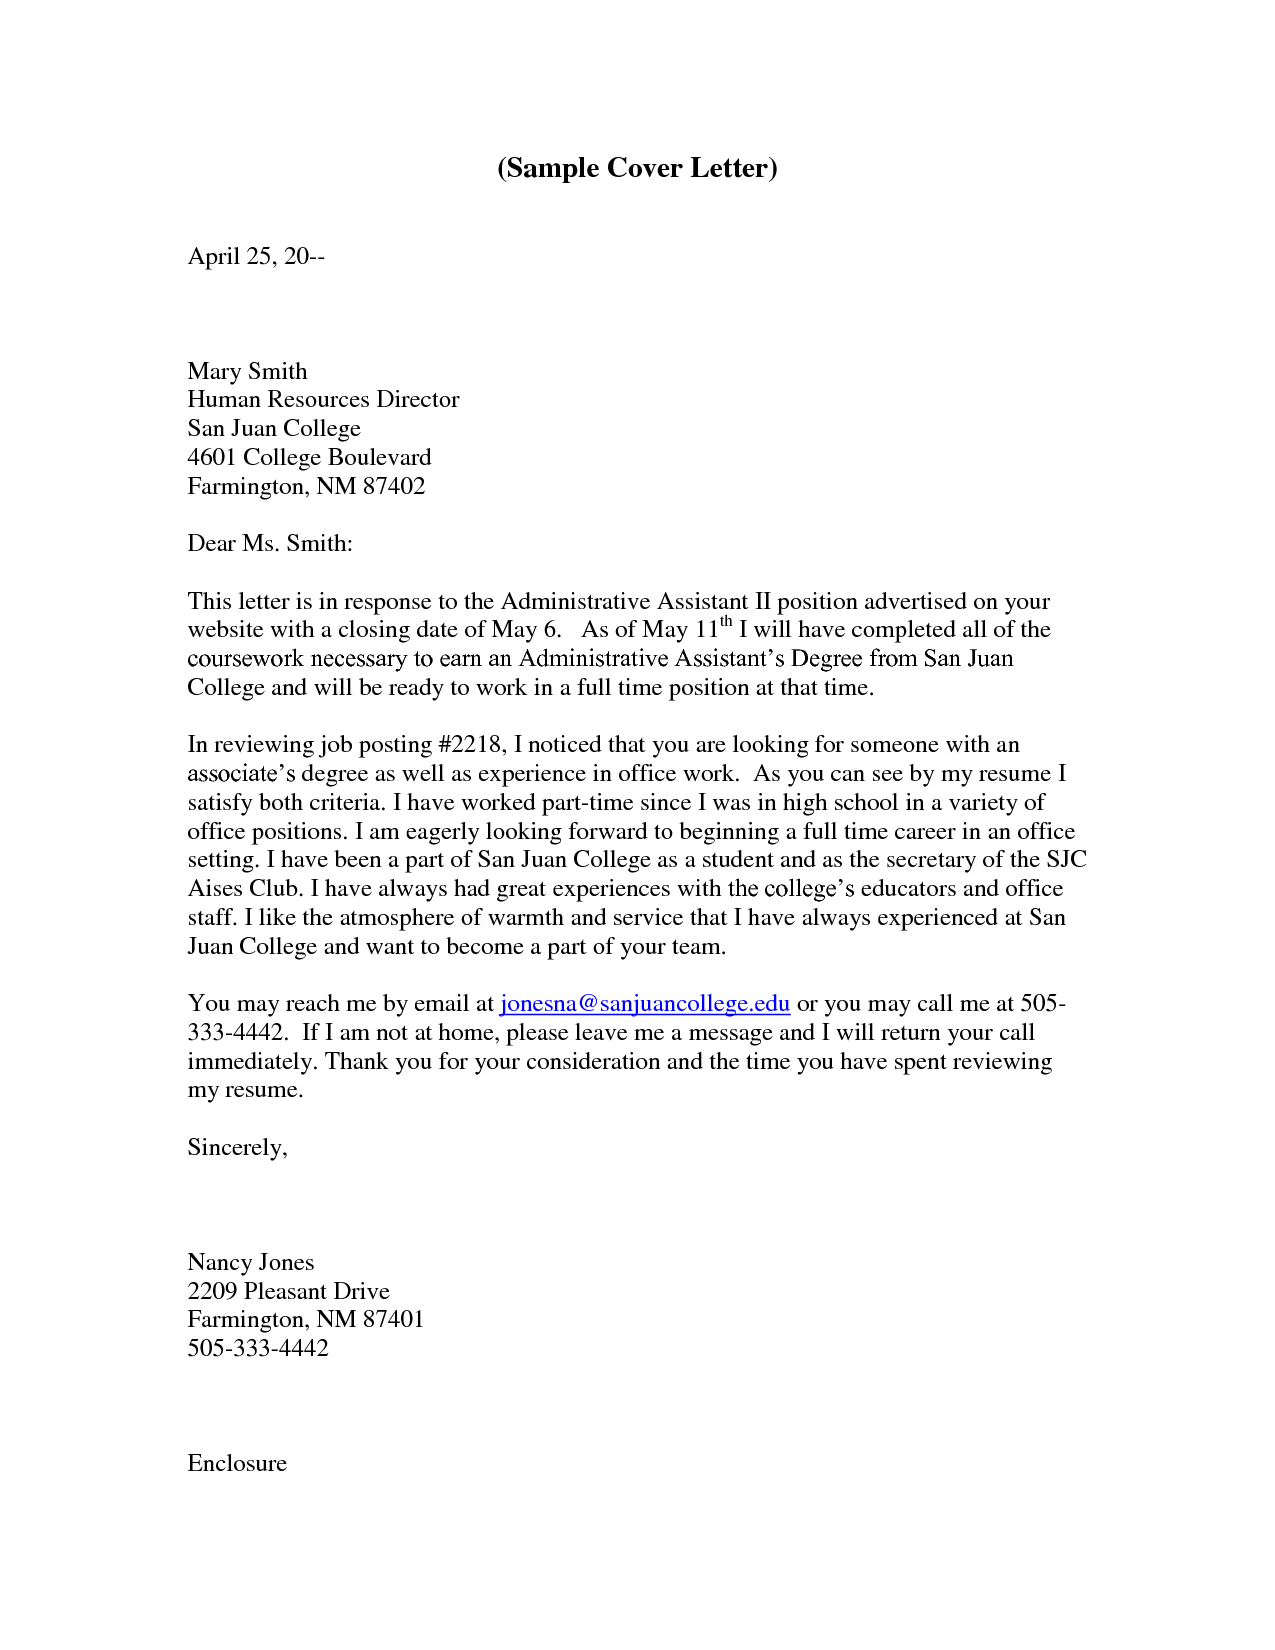 Resume Cover Letter For Administrative Assistant Position ...